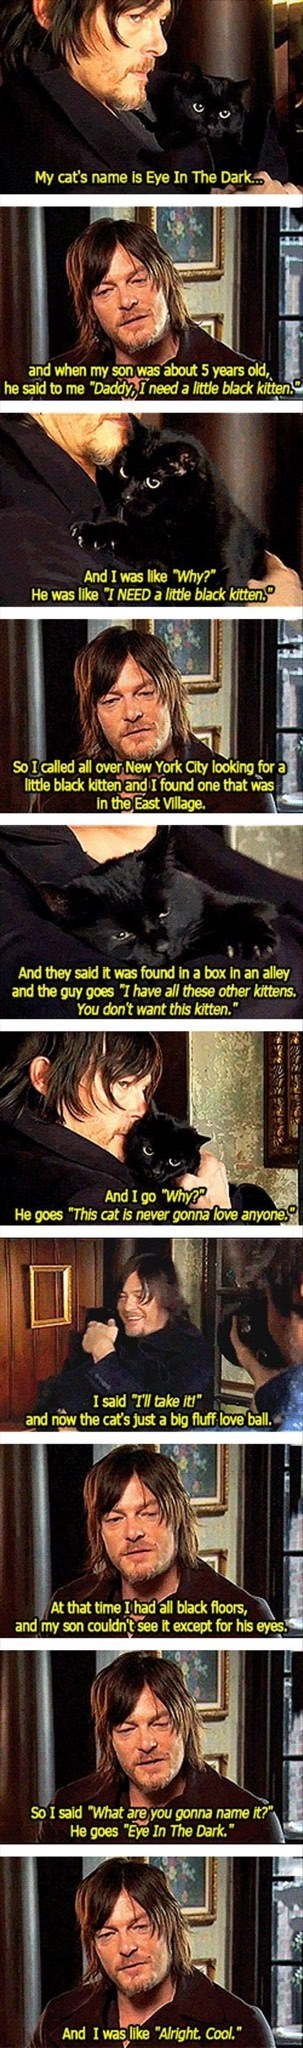 """wholesome meme - Photo caption - My cat's name is Eye In The Dark.. and when my son was about 5 years old he said to me """"Daddy,I need a little black kitten. And I was like Why?"""" He was like """"I NEED a little black kitten."""